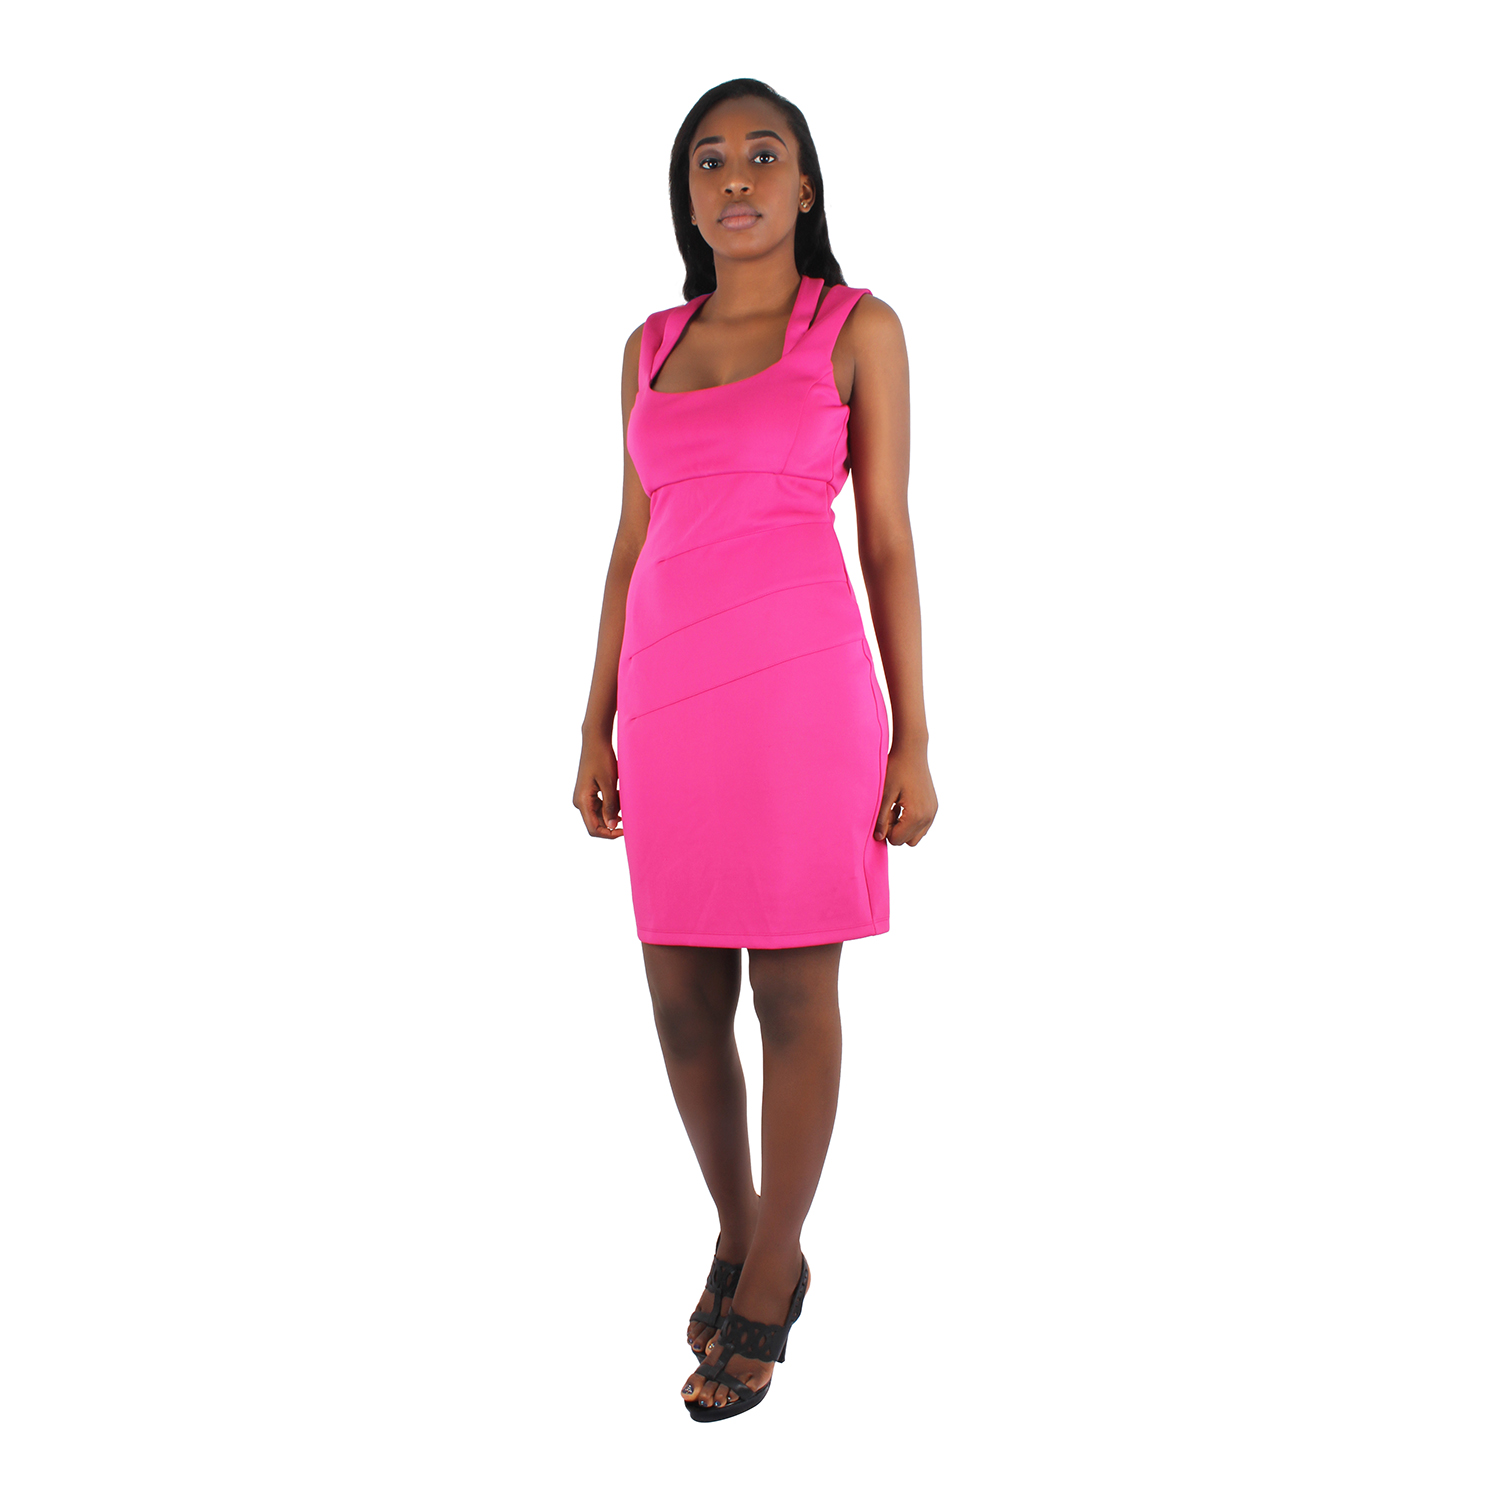 6f47395336 Feelynx Online Fashion Store - Guess Pink Dress Size 10